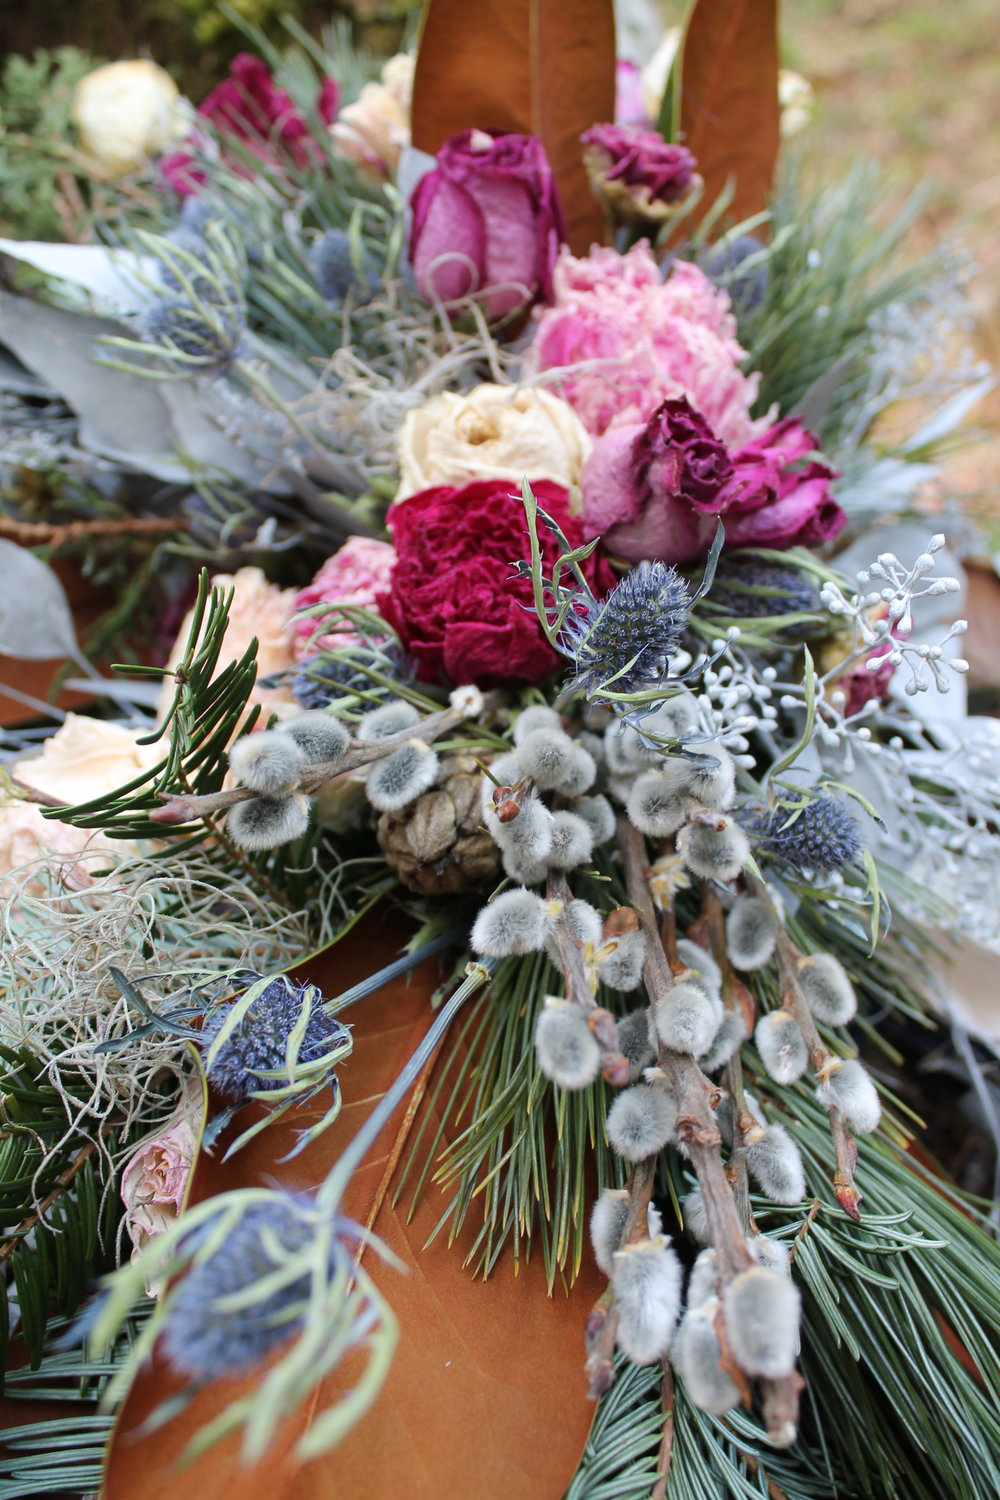 Spring Magnolia and Thistle bouquet. Featuring bronze magnolia leaves, woodland greeneries, pussywillow, blush, scarlet and pink peonies, cream roses, sea holly thistle and cream, gold and navy ribbons.